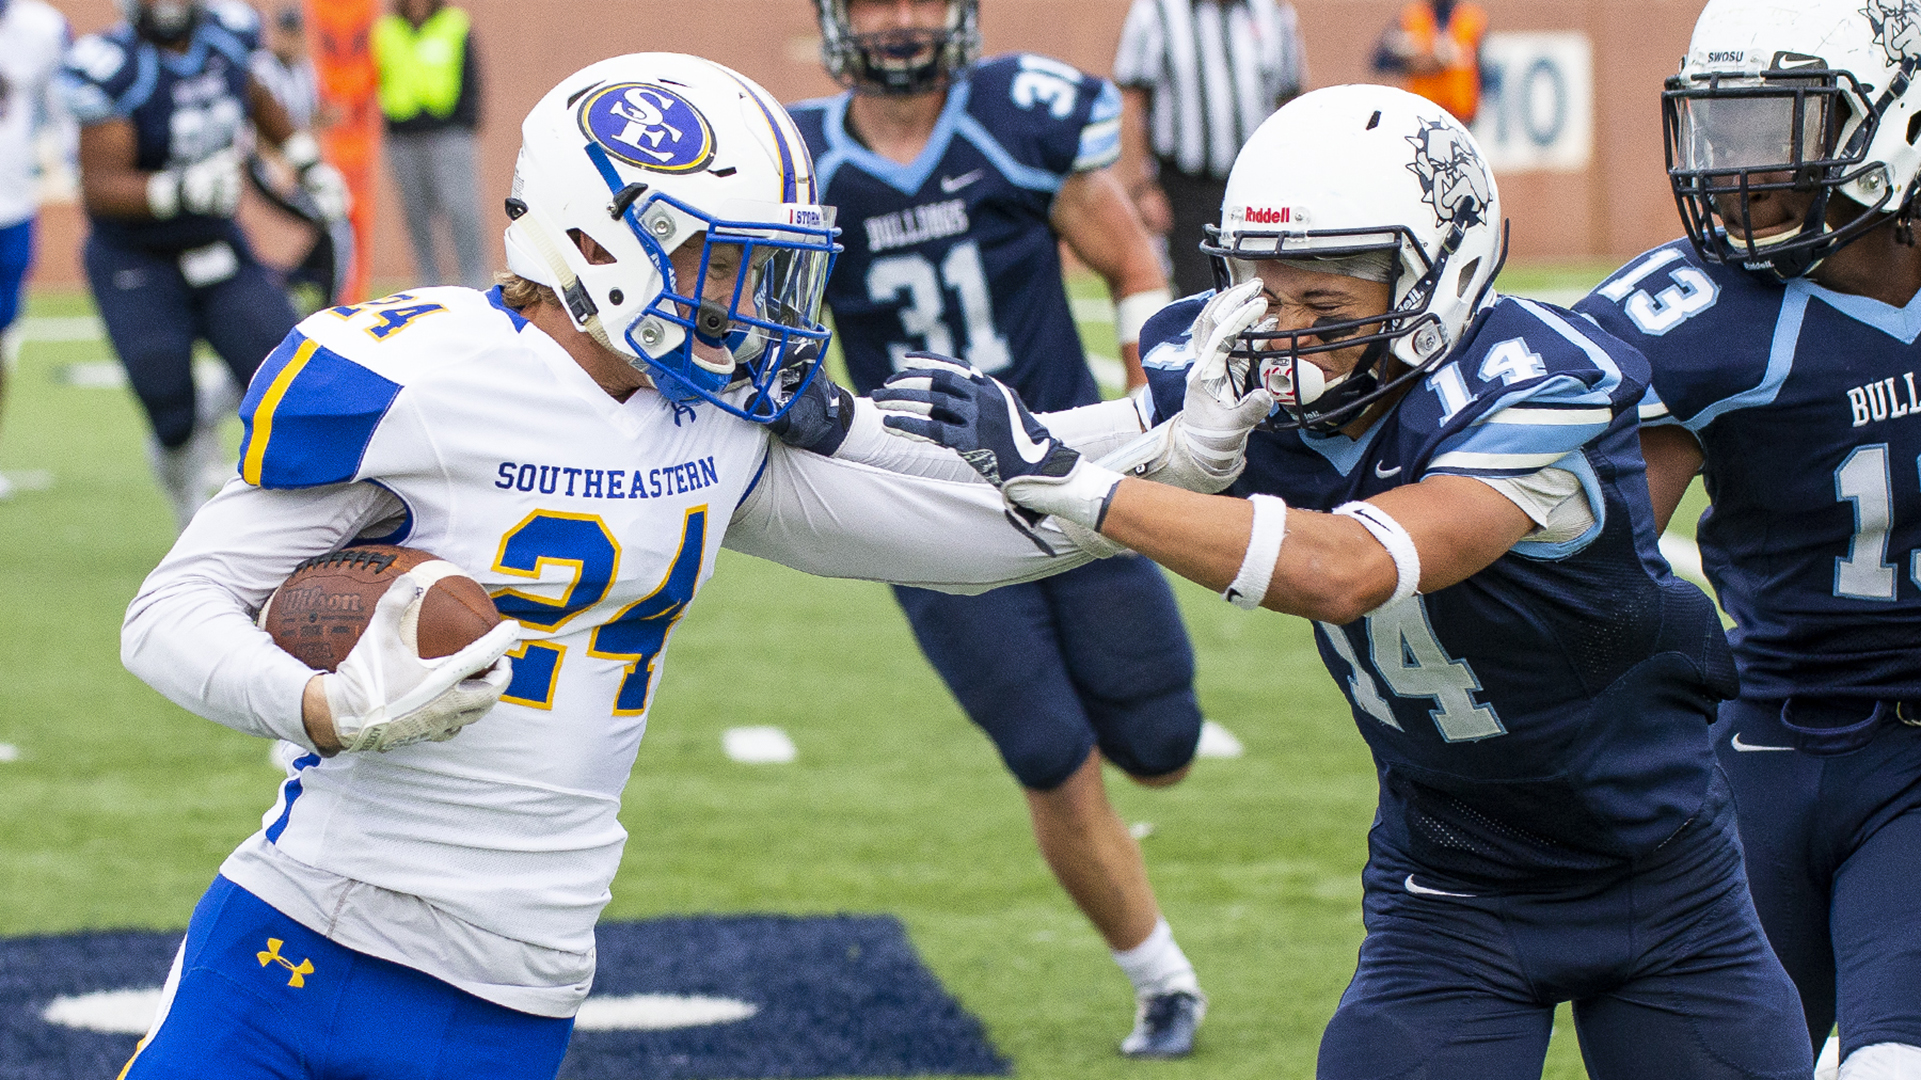 Bulldog Football Upended by Southeastern - Southwestern ...